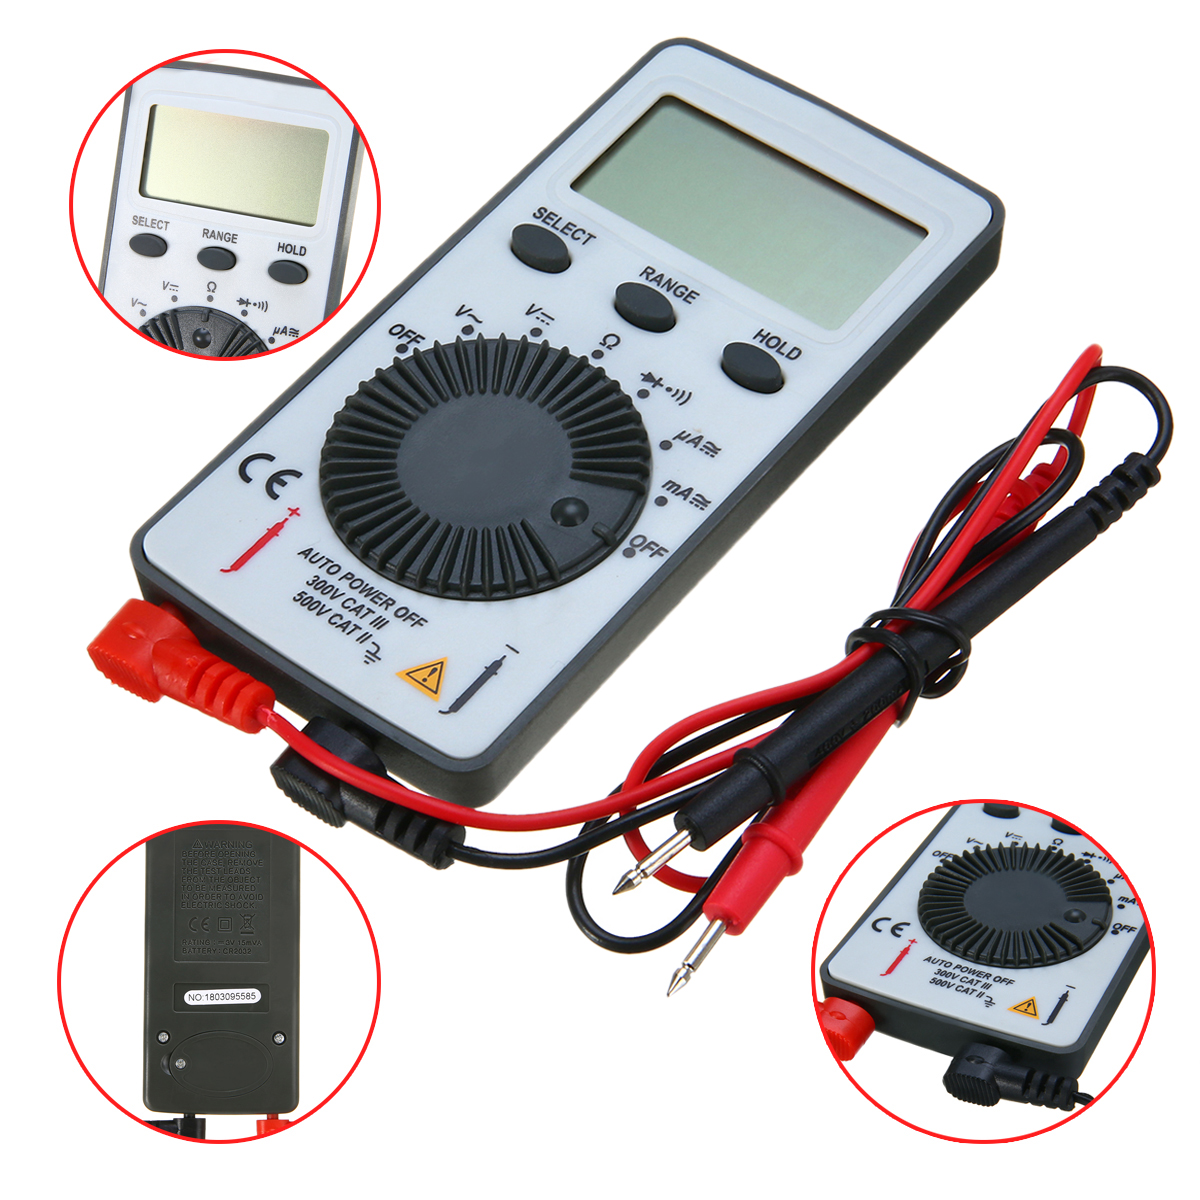 AN101 Digital Mini Multimeter DC/AC Voltage Current Meter Handheld Pocket Voltmeter Ammeter Tester With Test Leads 10*55*10mm